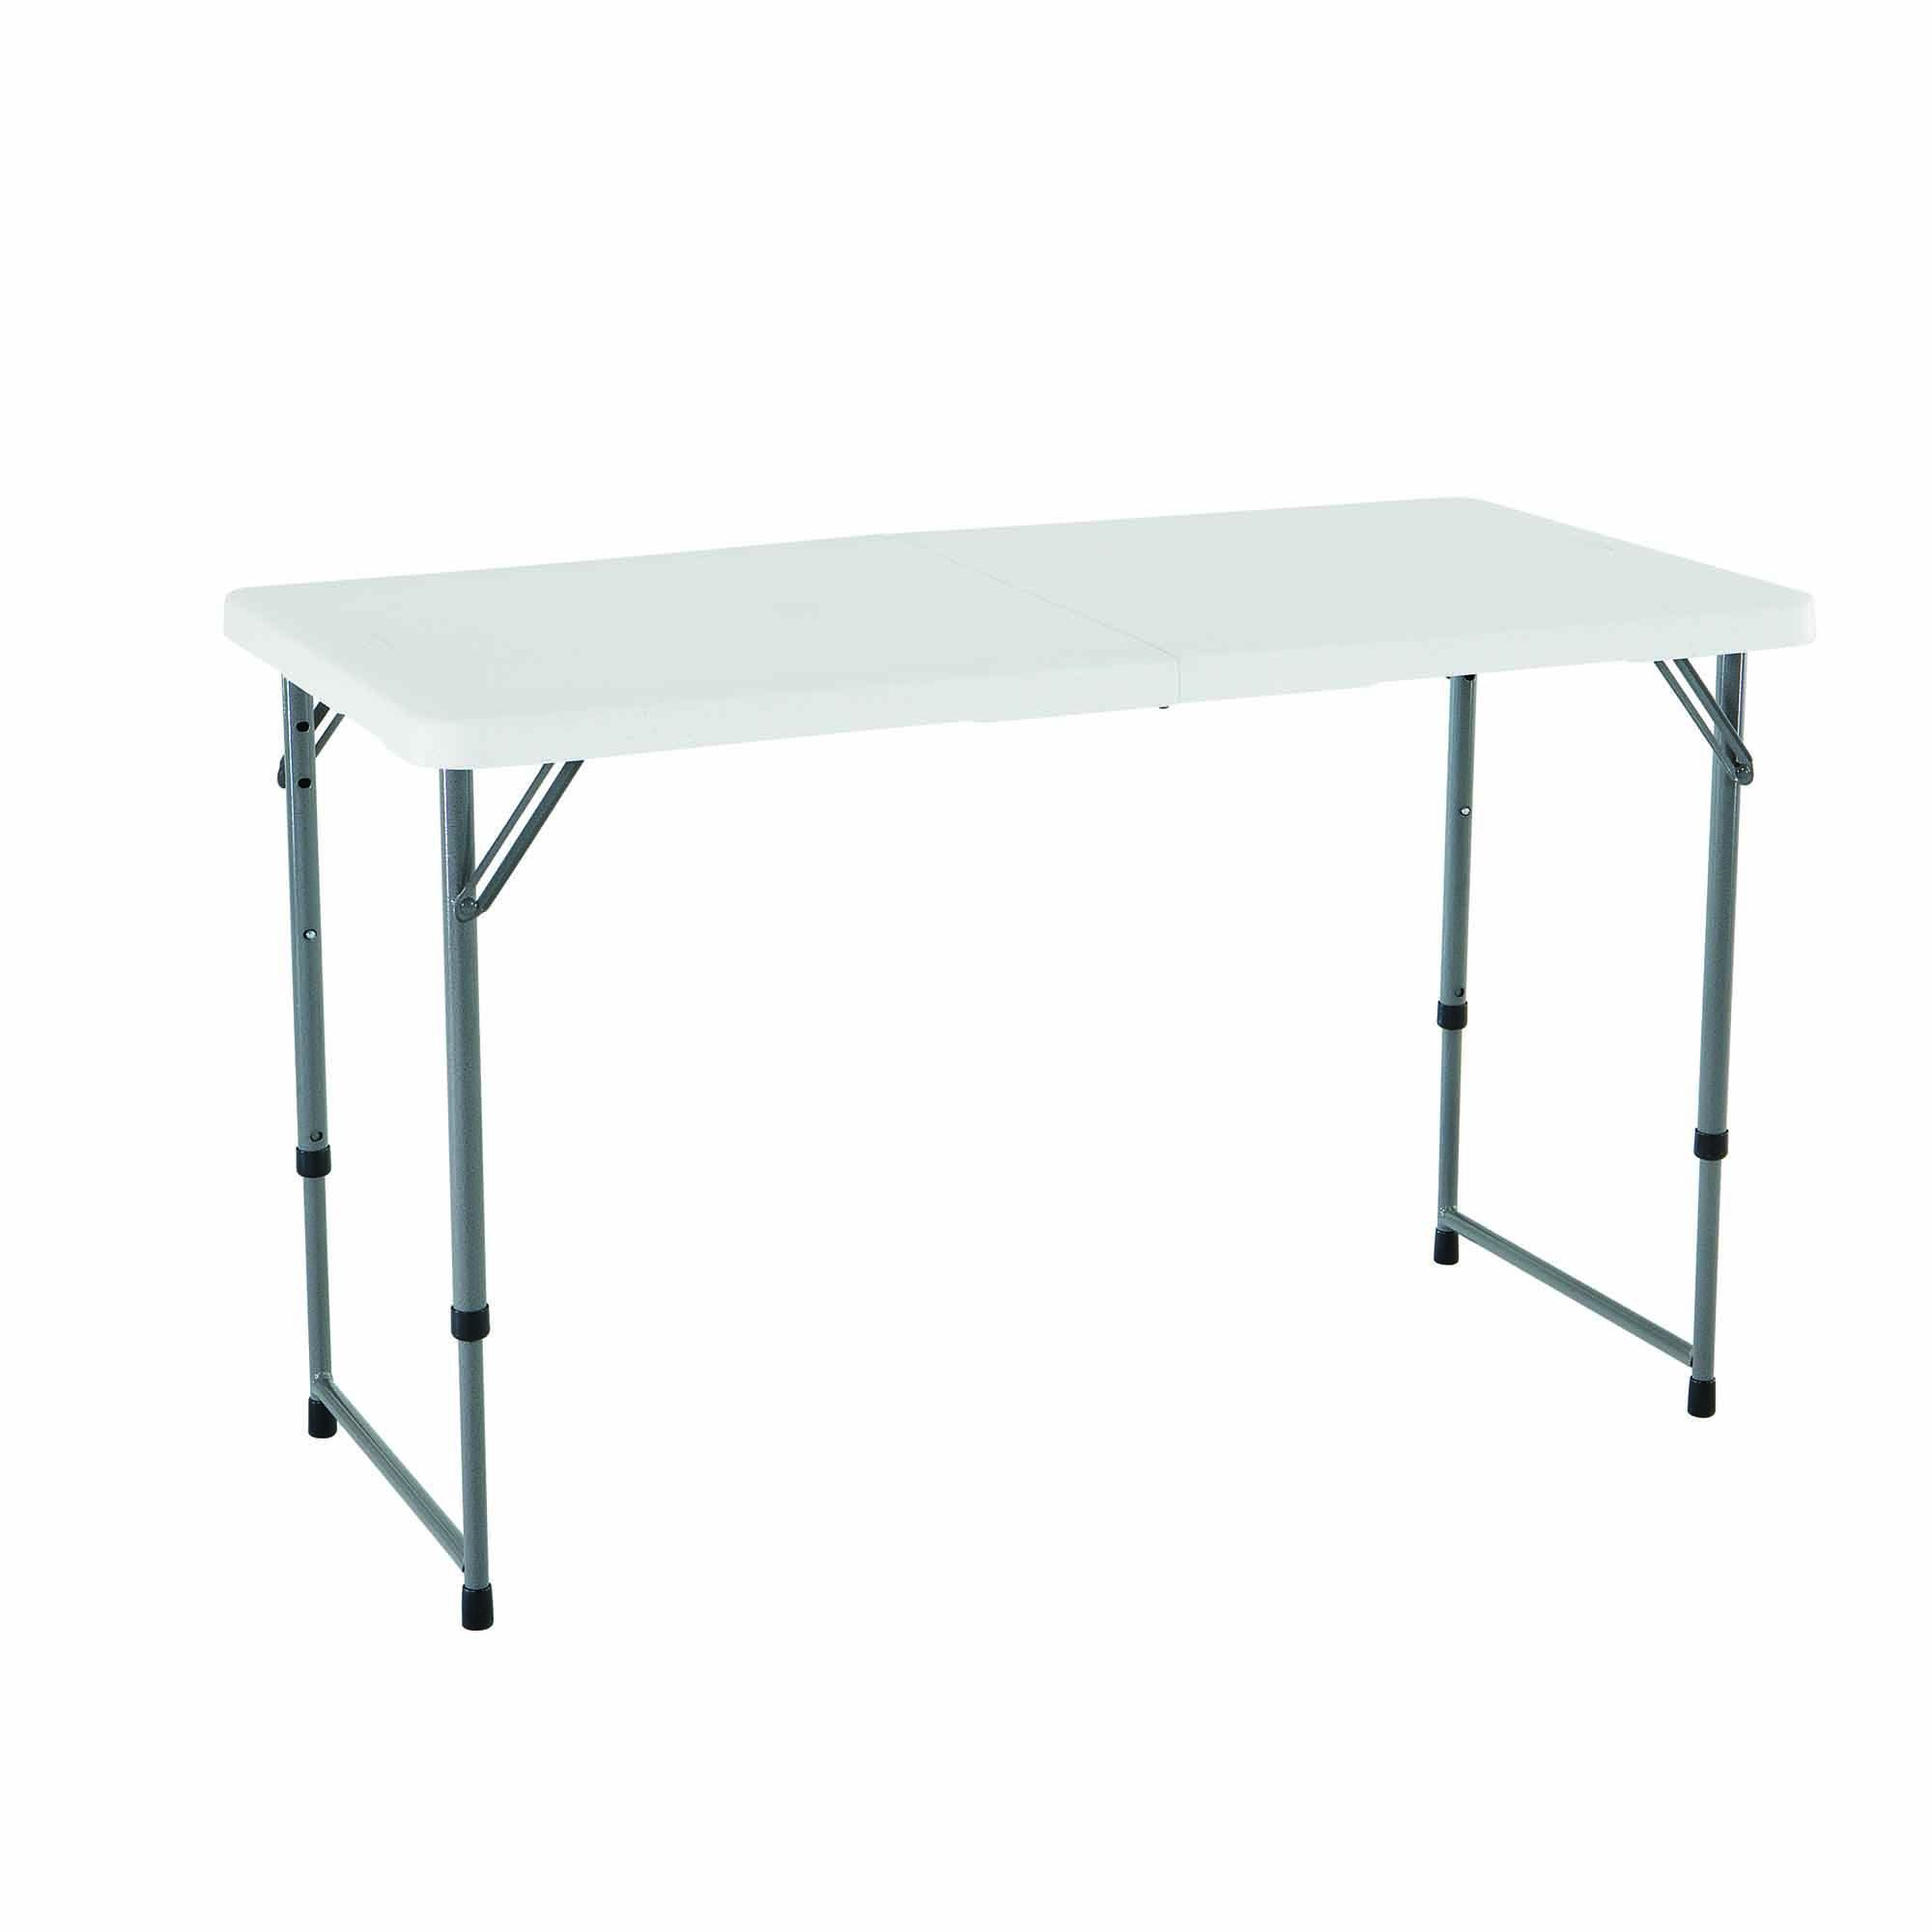 Lifetime 4428 Height Adjustable Folding Utility Table, 48 by 24 Inches, White Granite (Renewed) by Lifetime